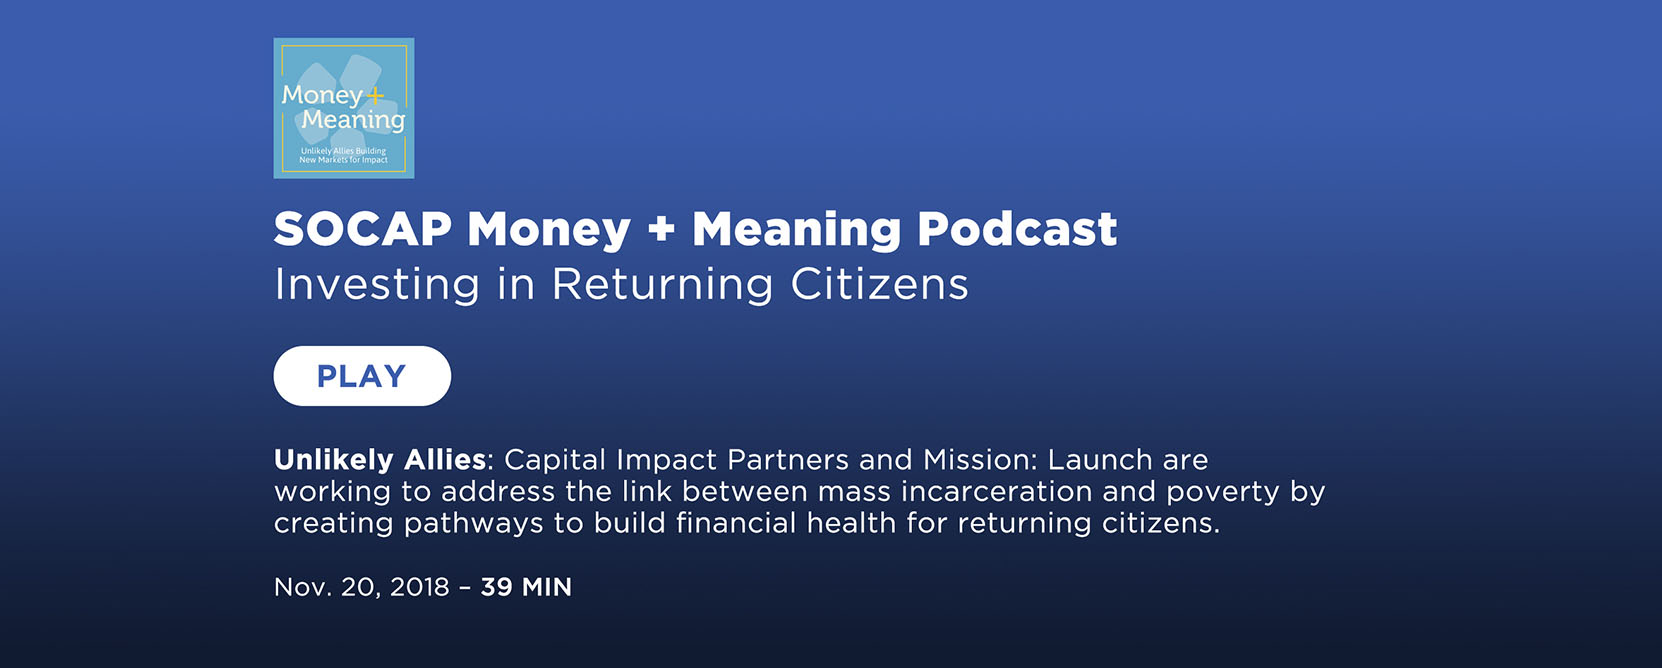 SOCAP Money + Meaning Podcast - Investing in Returning Citizens